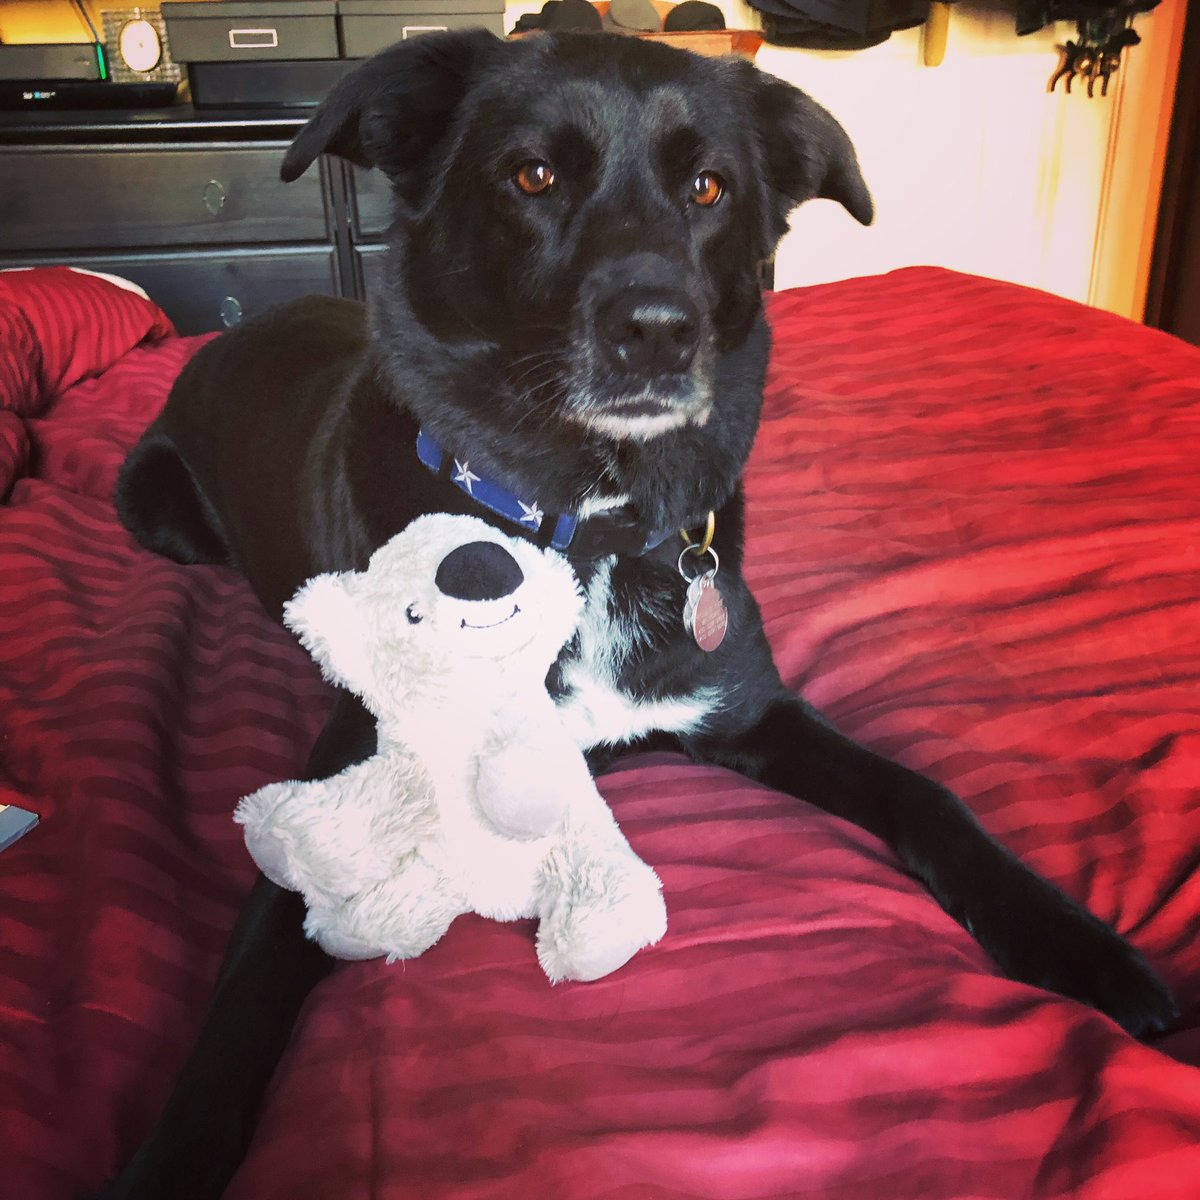 Lana @lanathelovepup says that Christmas is for kisses, treats, and toys! #merrychristmas #squeakytoy #blackdogsrule #rescuedogsofinstagram #bordercollie #borderlab